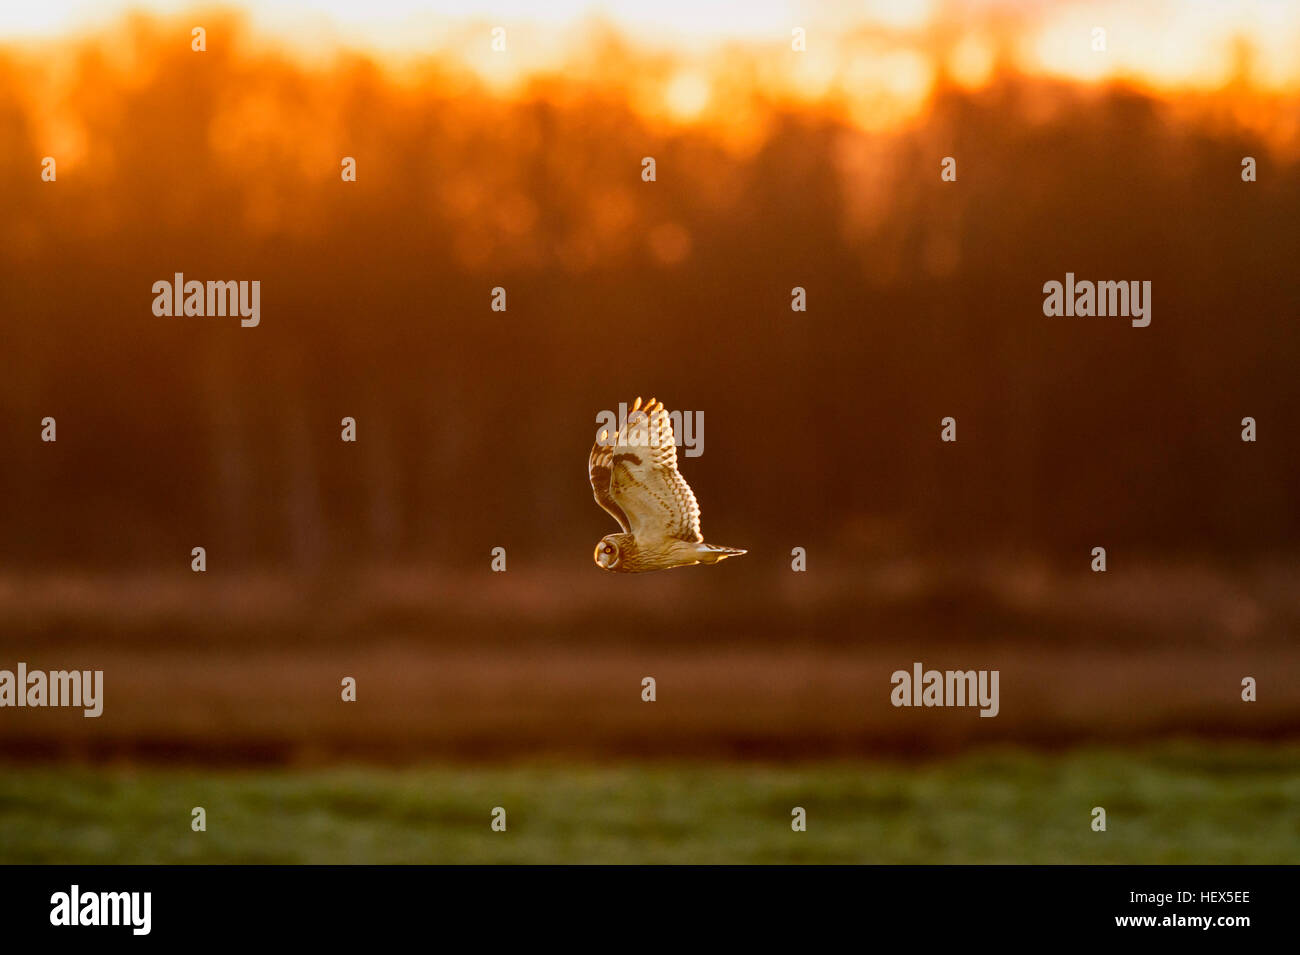 A Short-eared Owl flying around searching for food just before sunset. - Stock Image